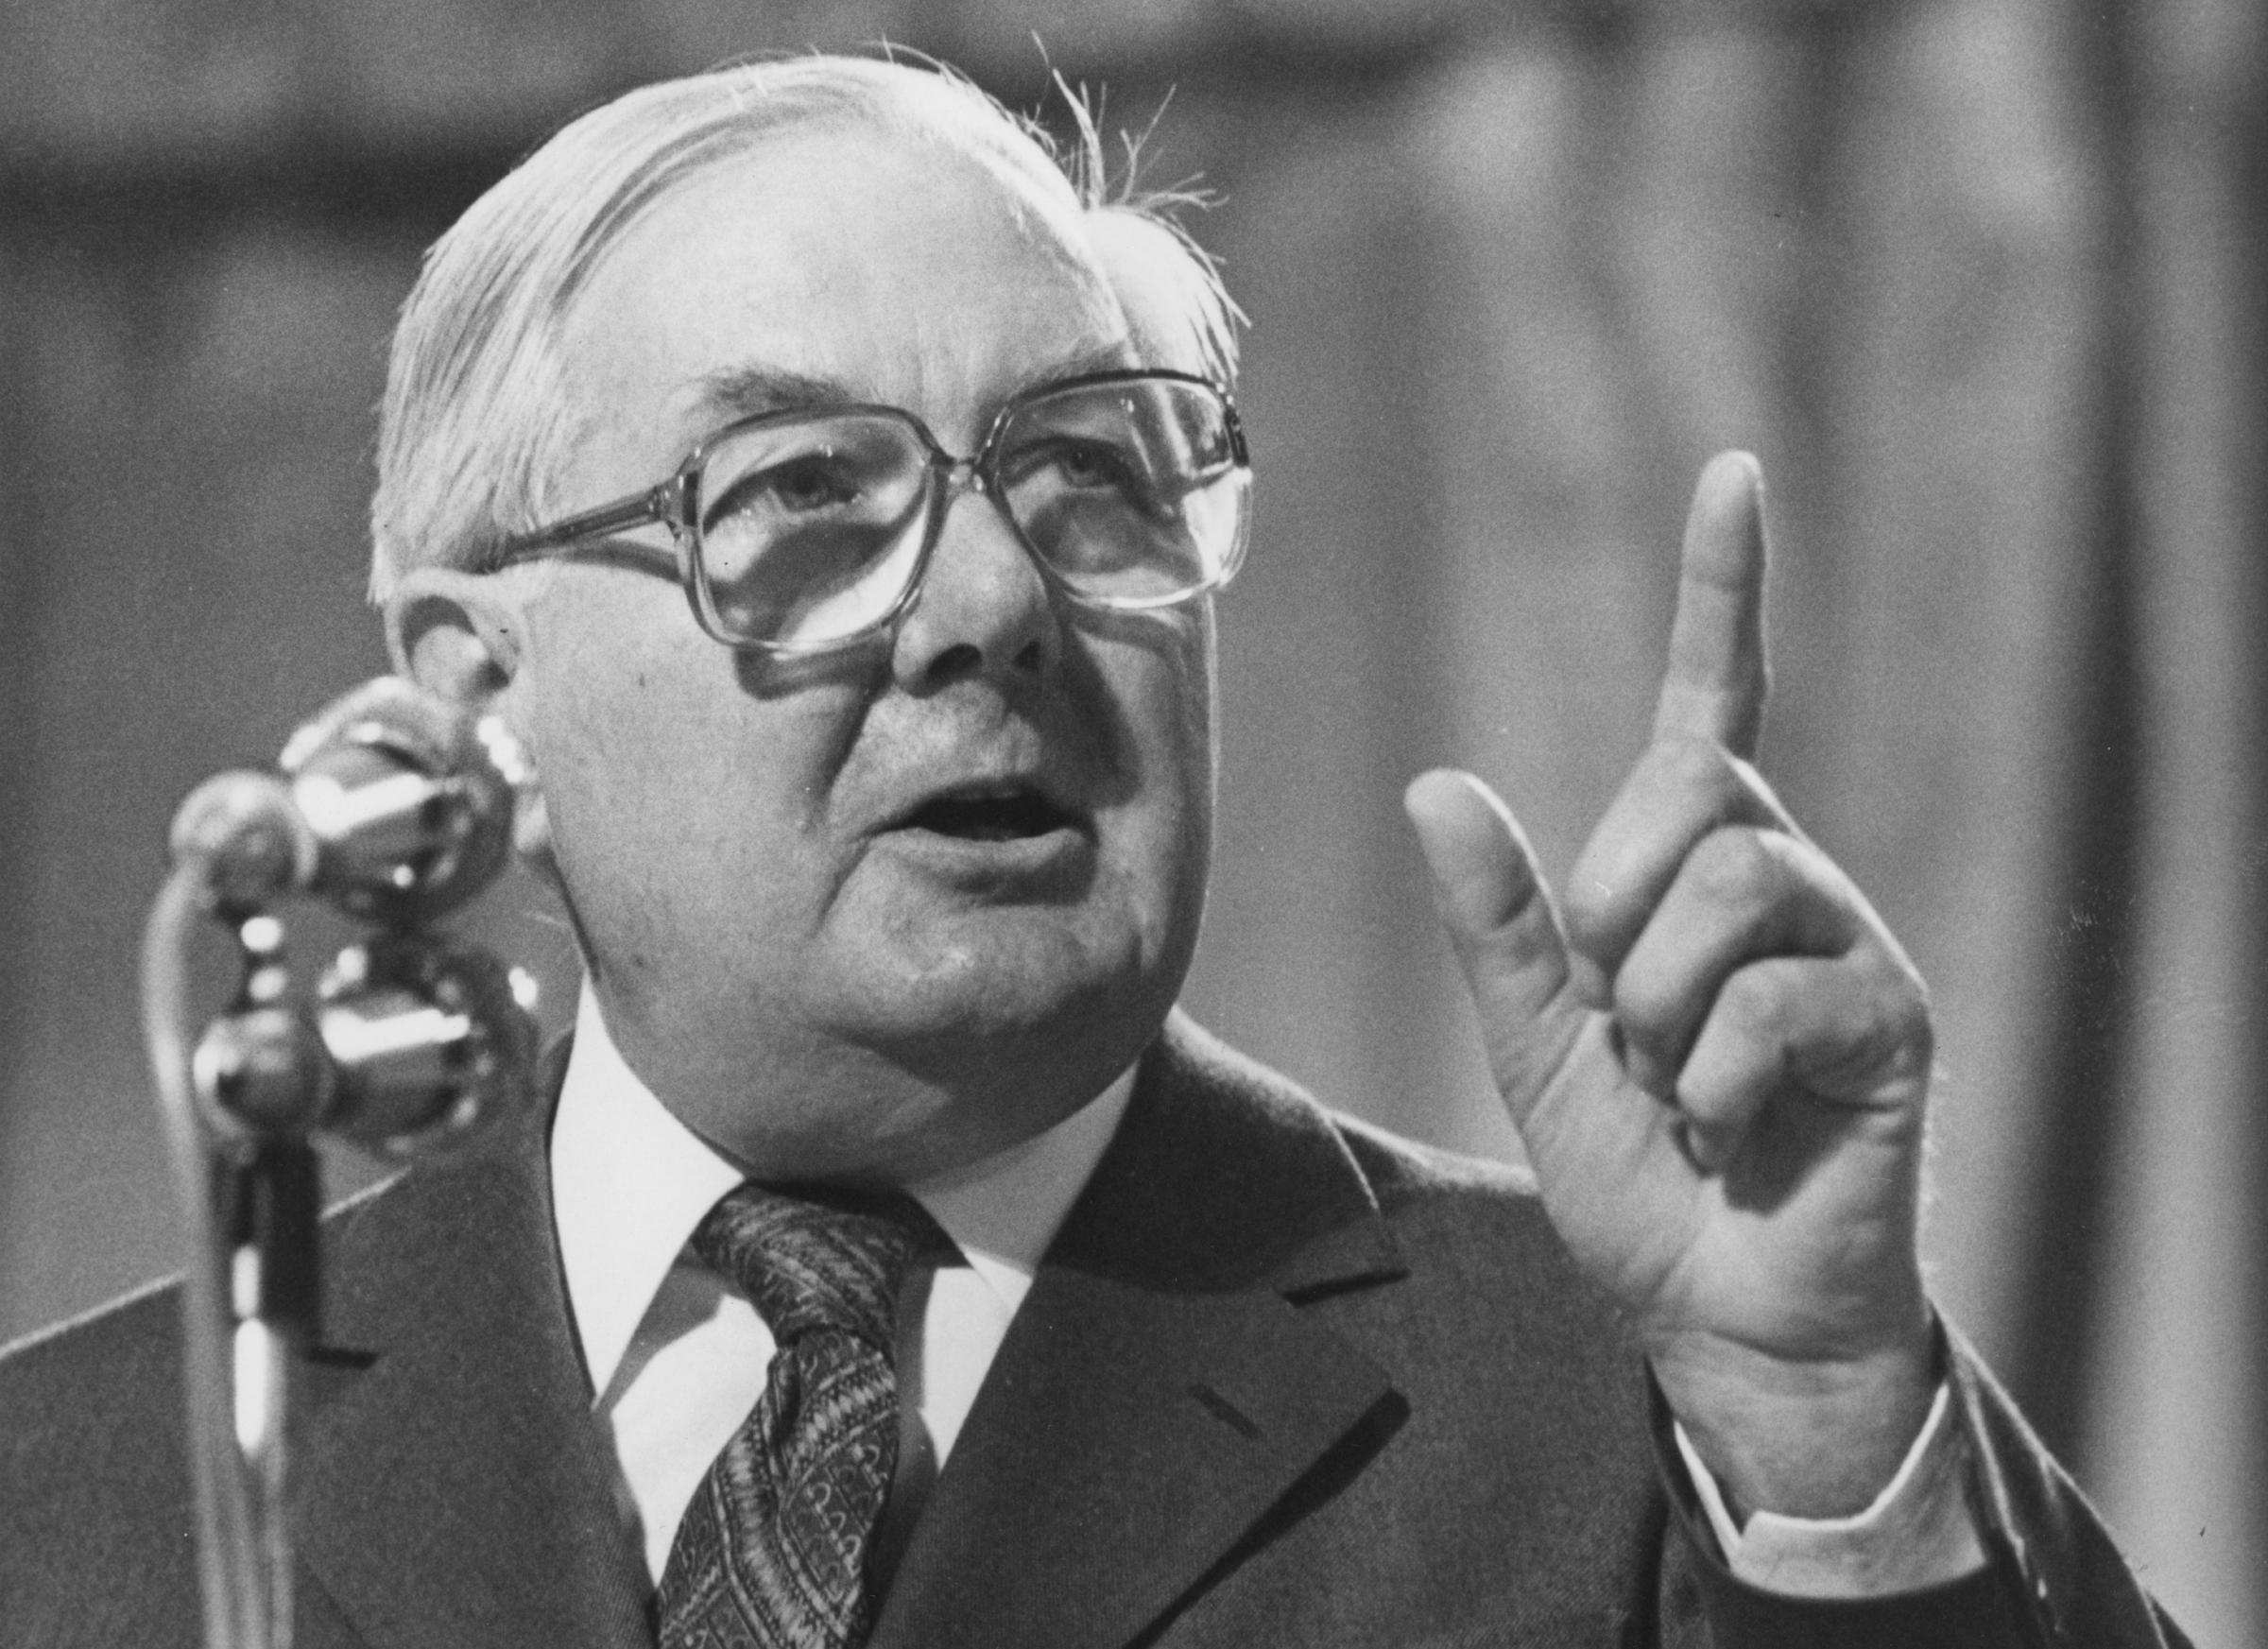 Labour prime minister James Callaghan called the 1979 General Election after losing a vote of no confidence 40 years ago today